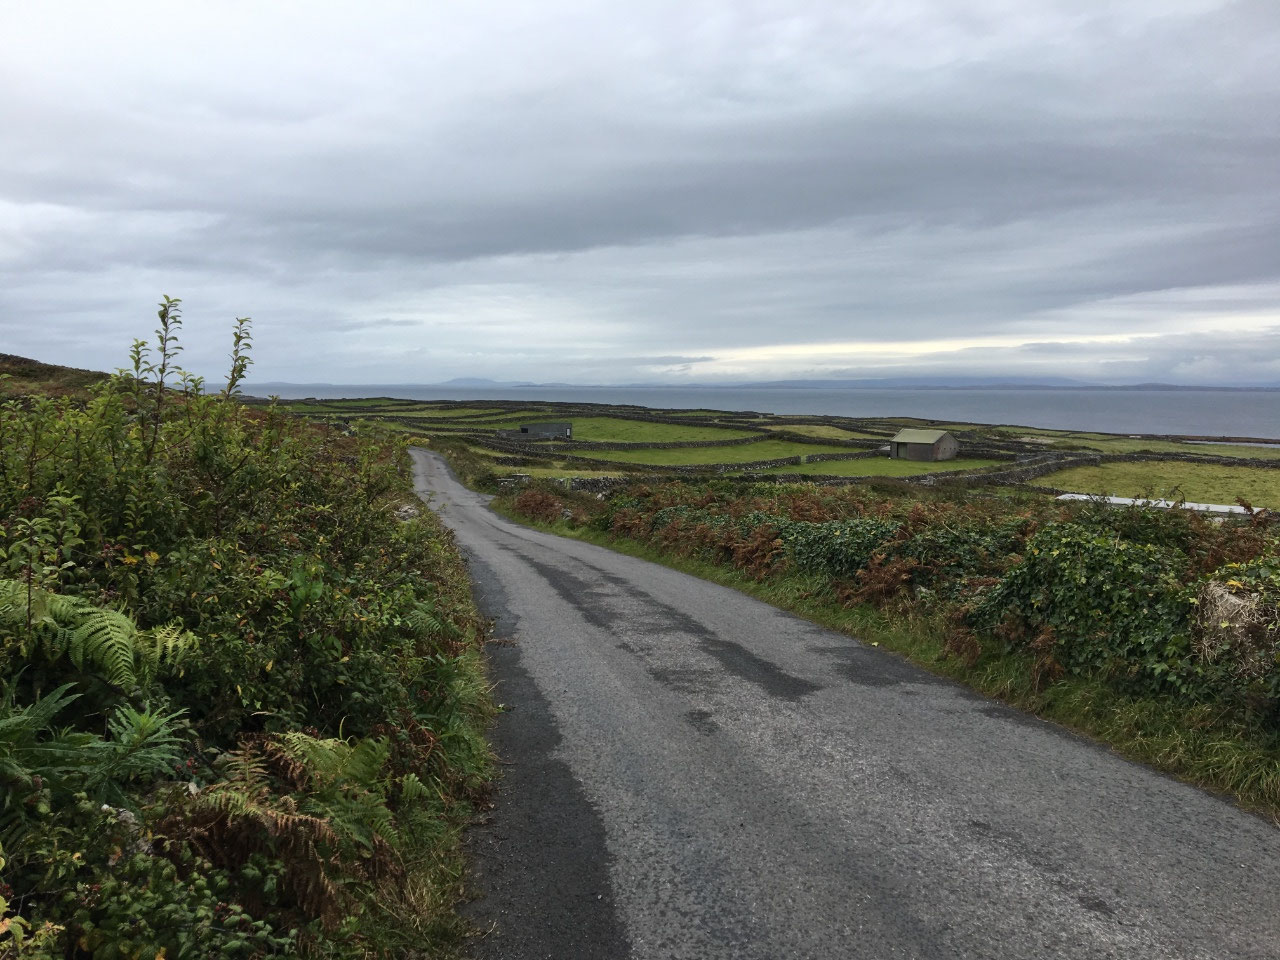 On the road in Inis Mor